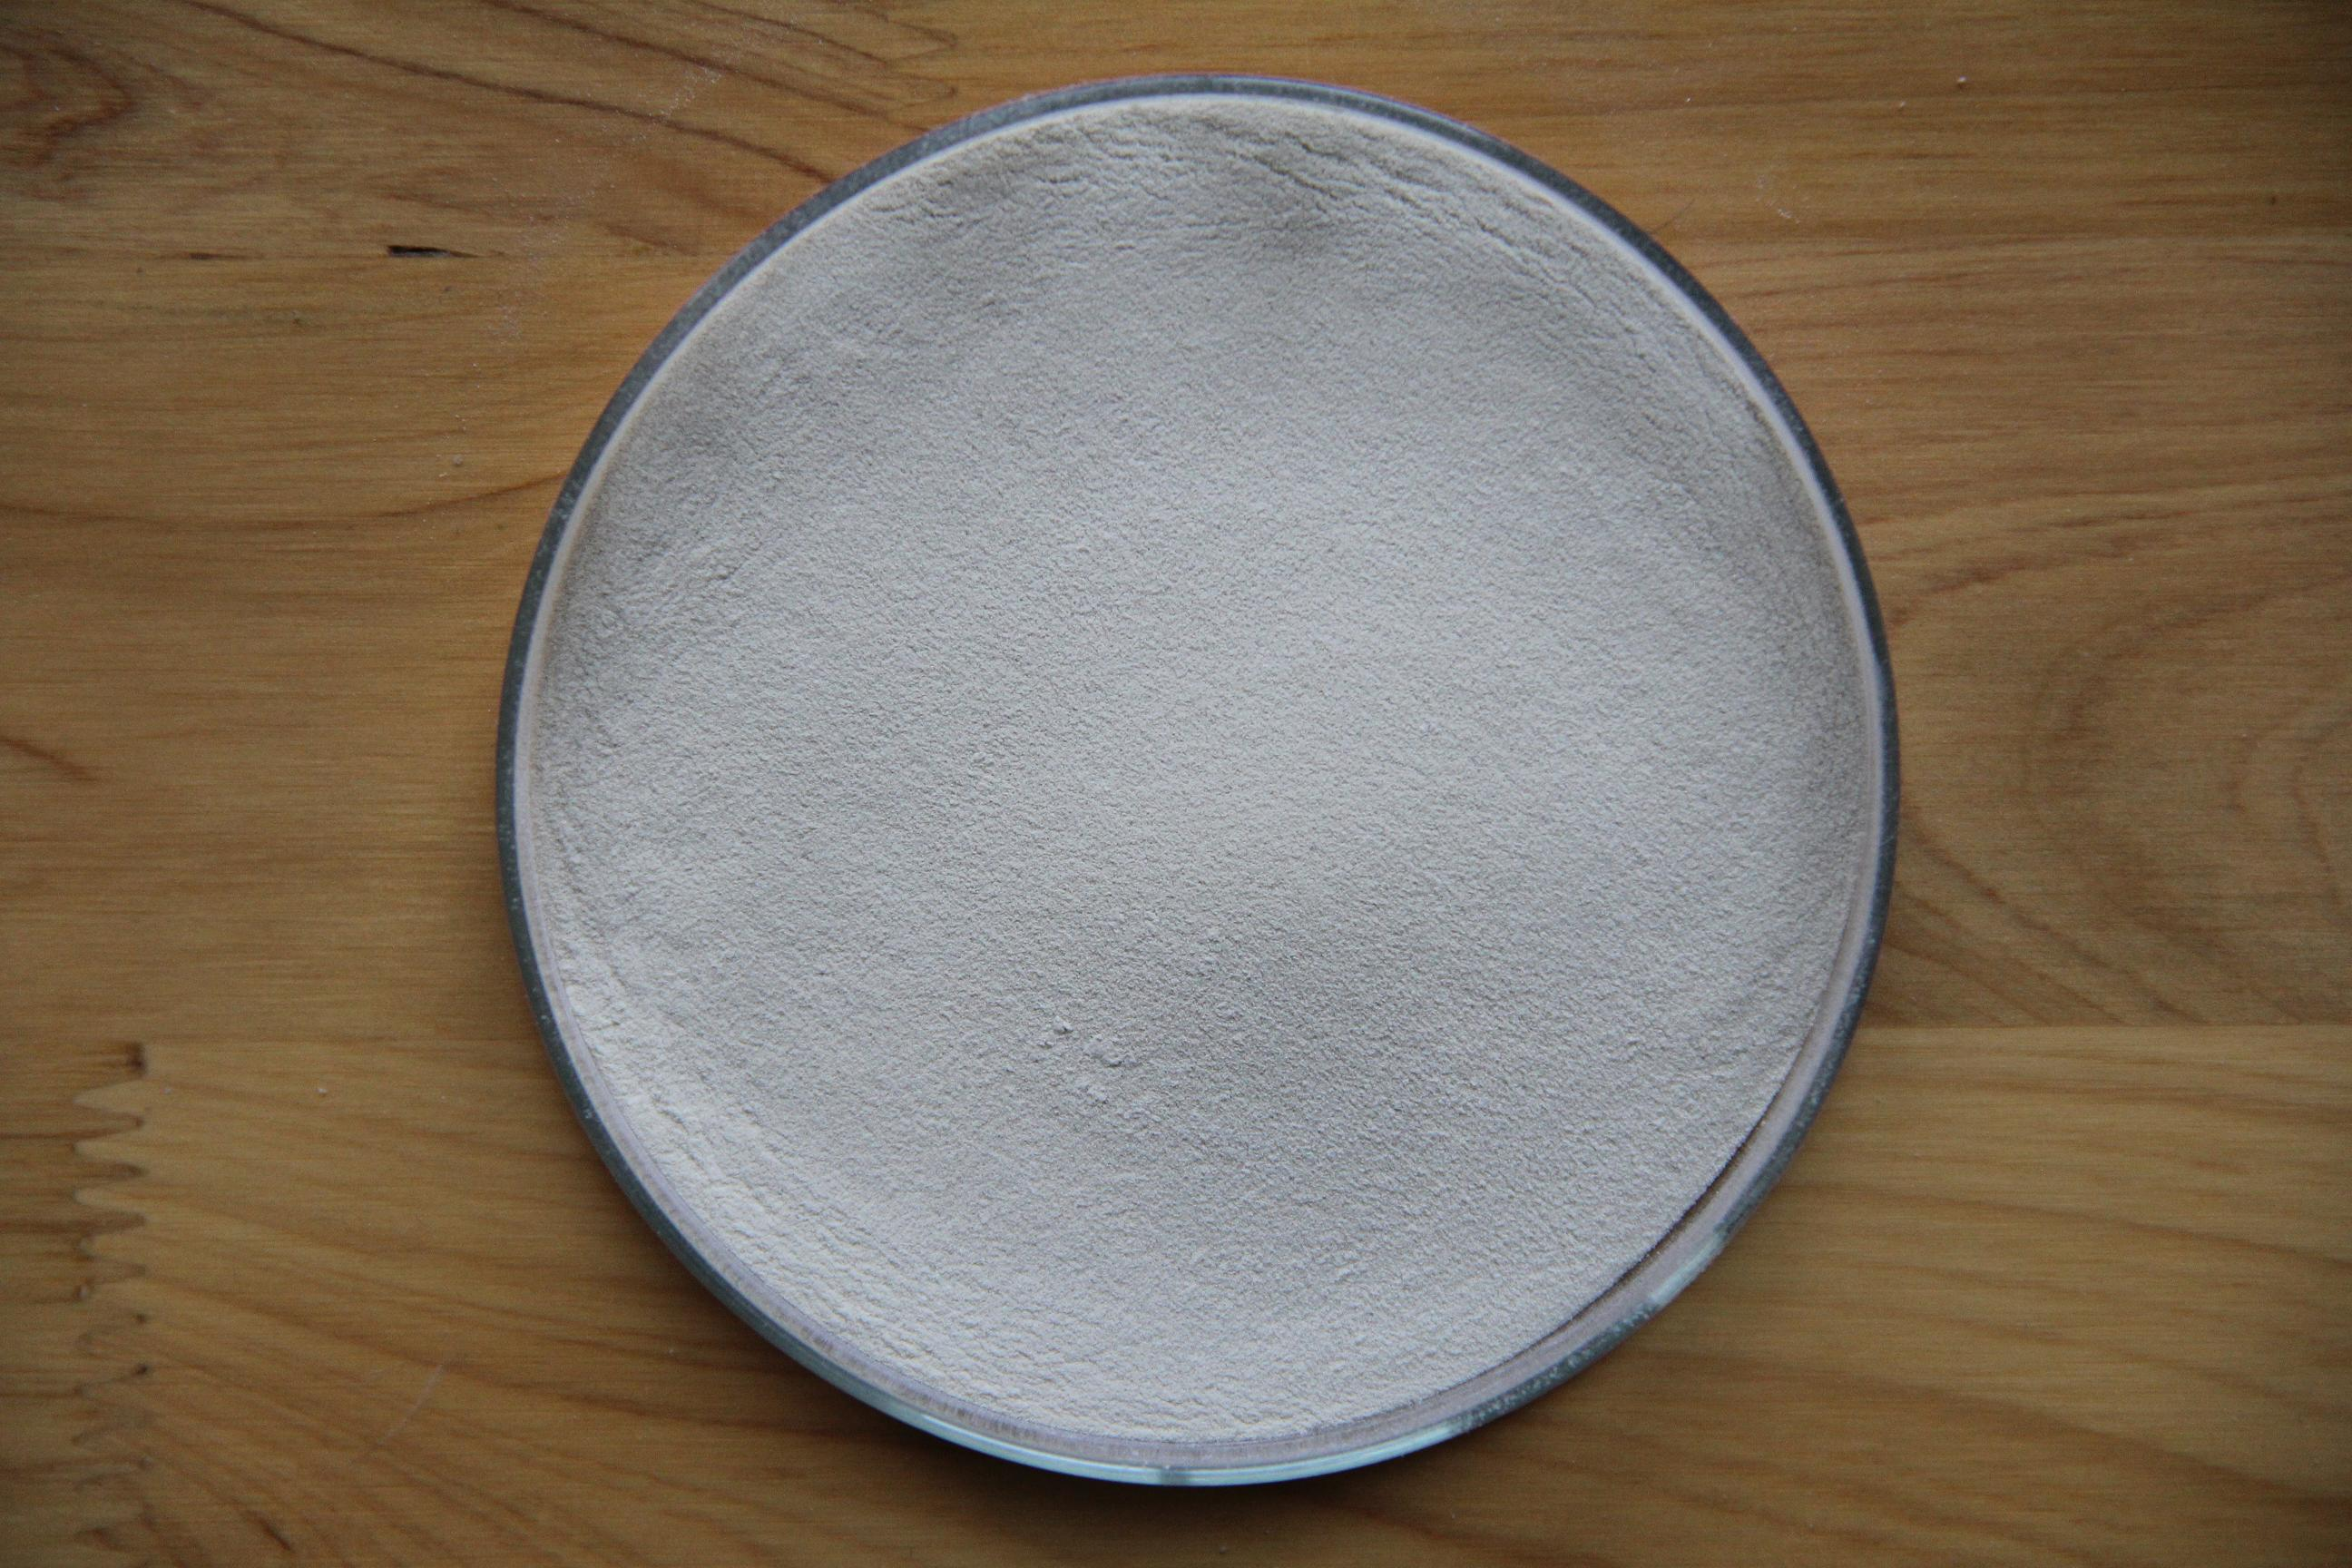 S-Carboxymethyl-L-Cysteine Cas No. 638-23-3